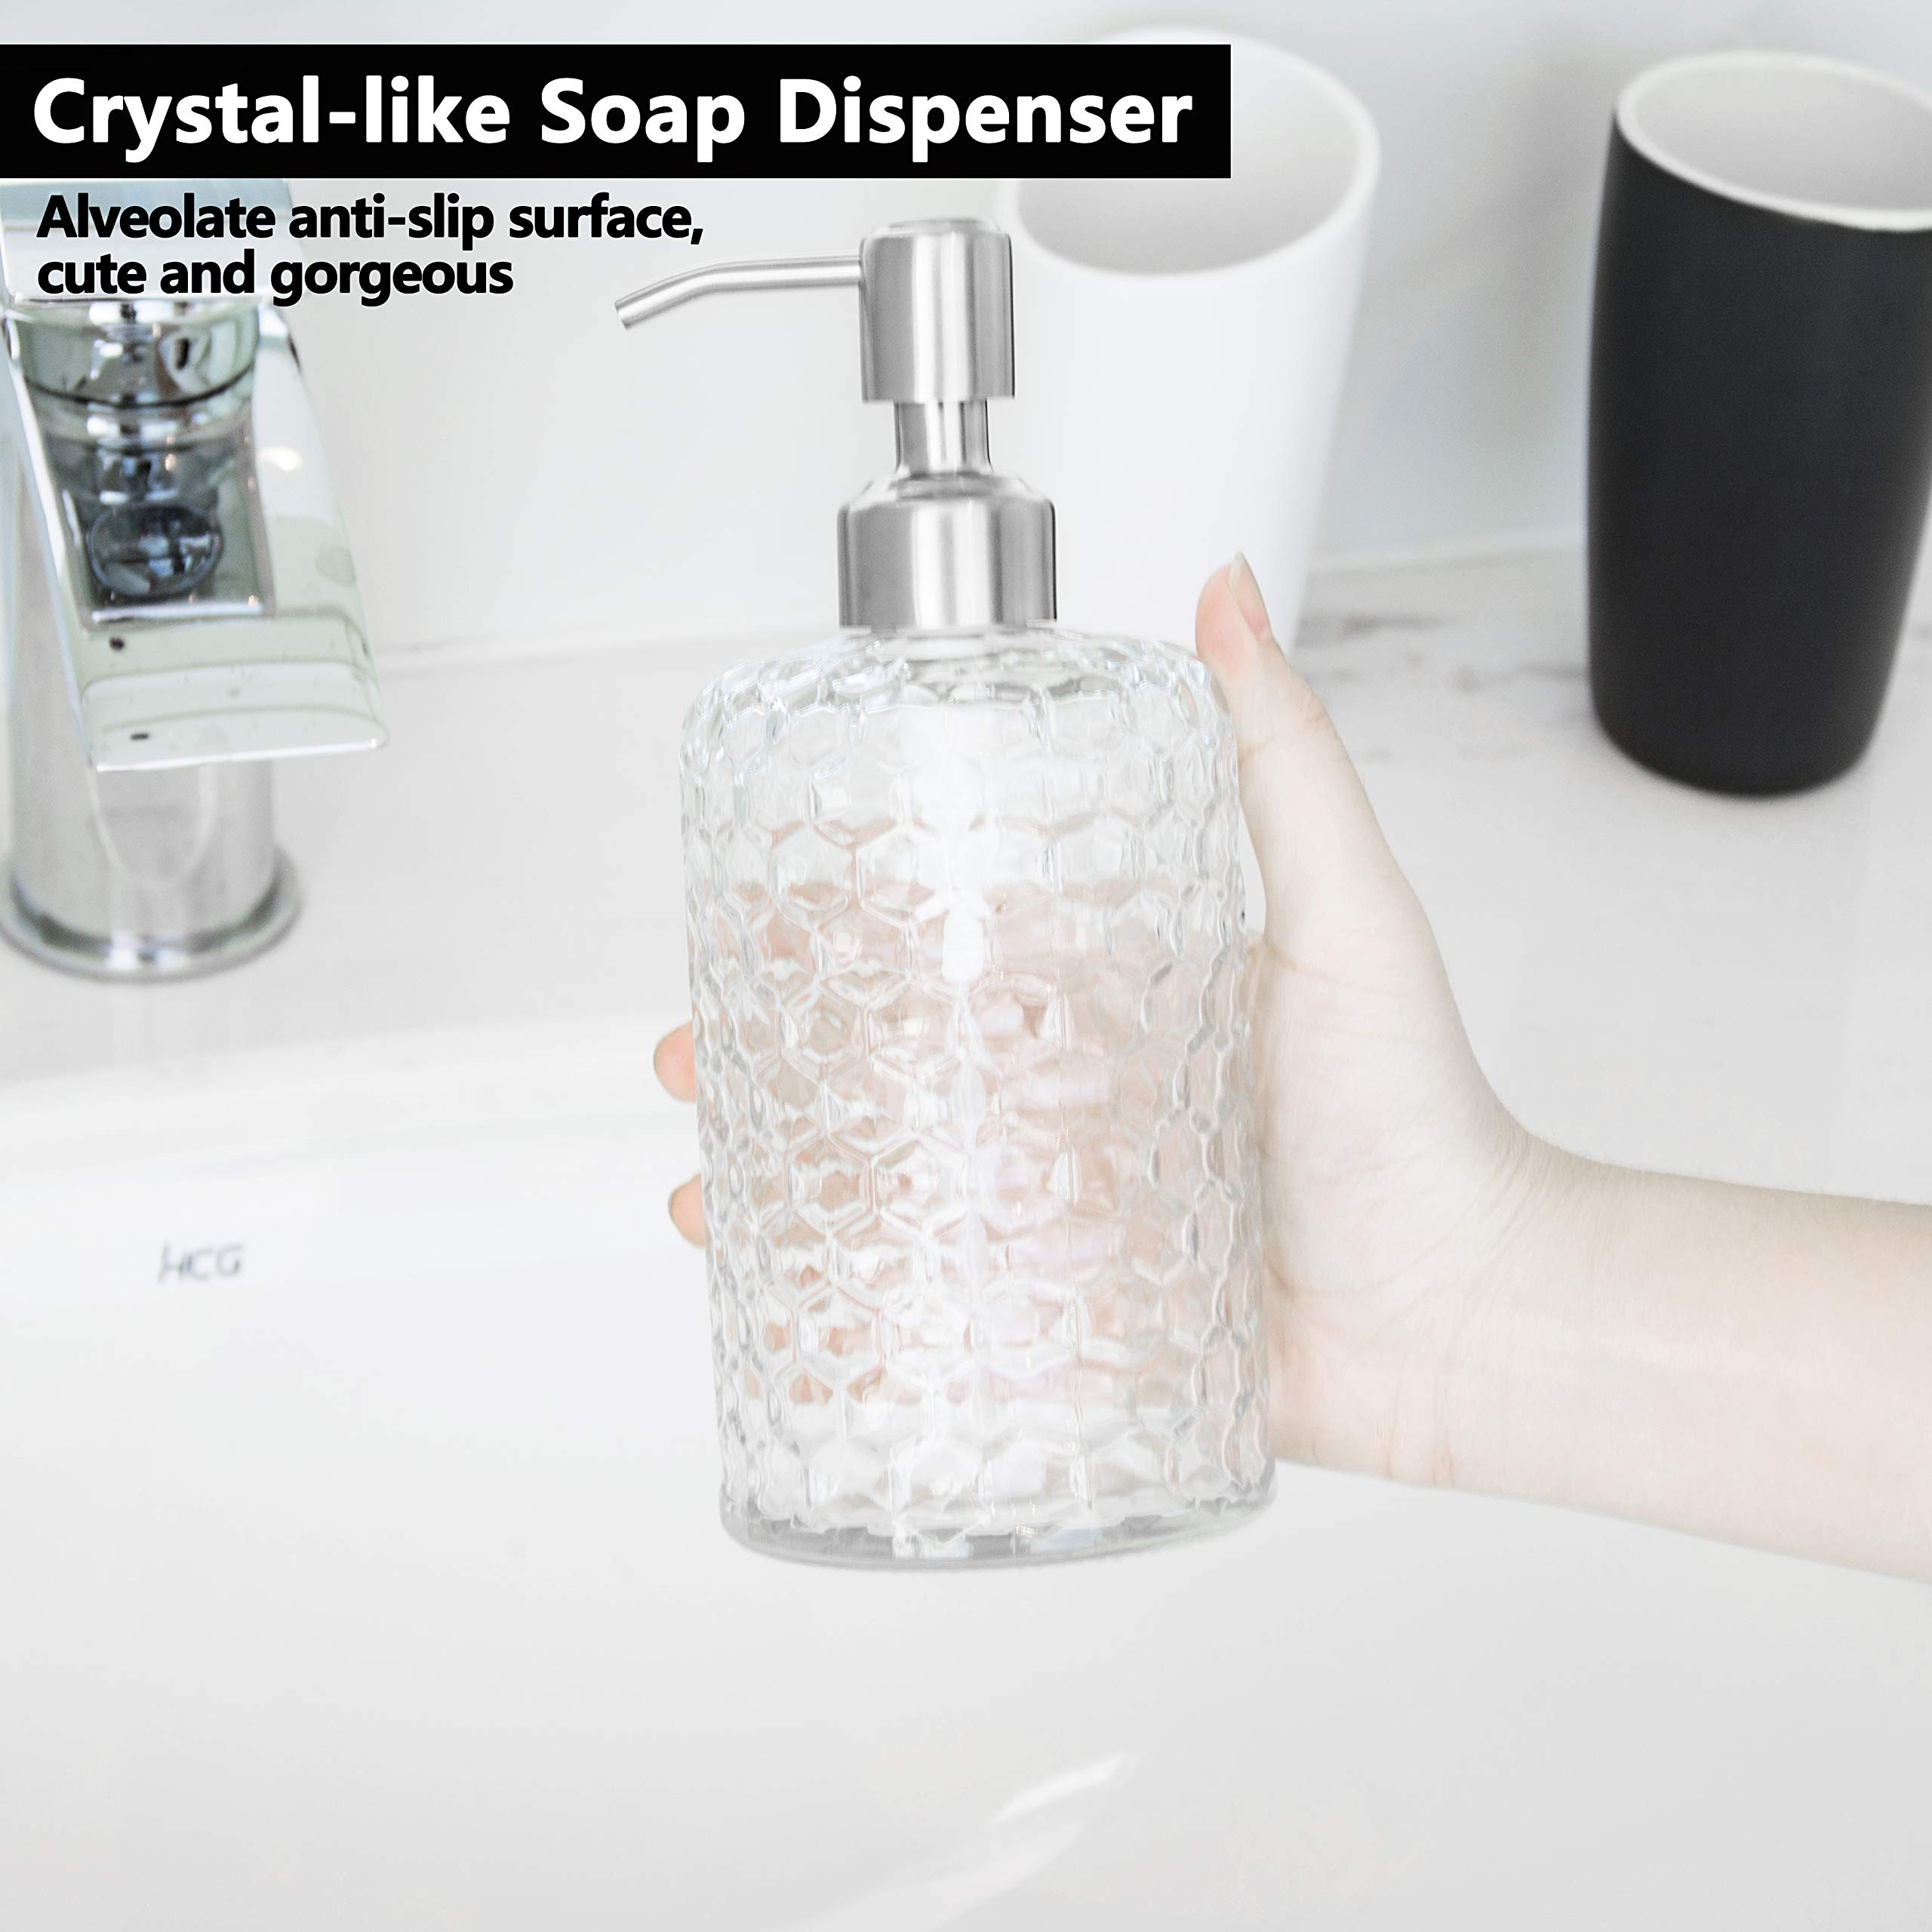 16 Oz Clear Glass Soap Dispenser with Brushed Nickel Pump Featured Image